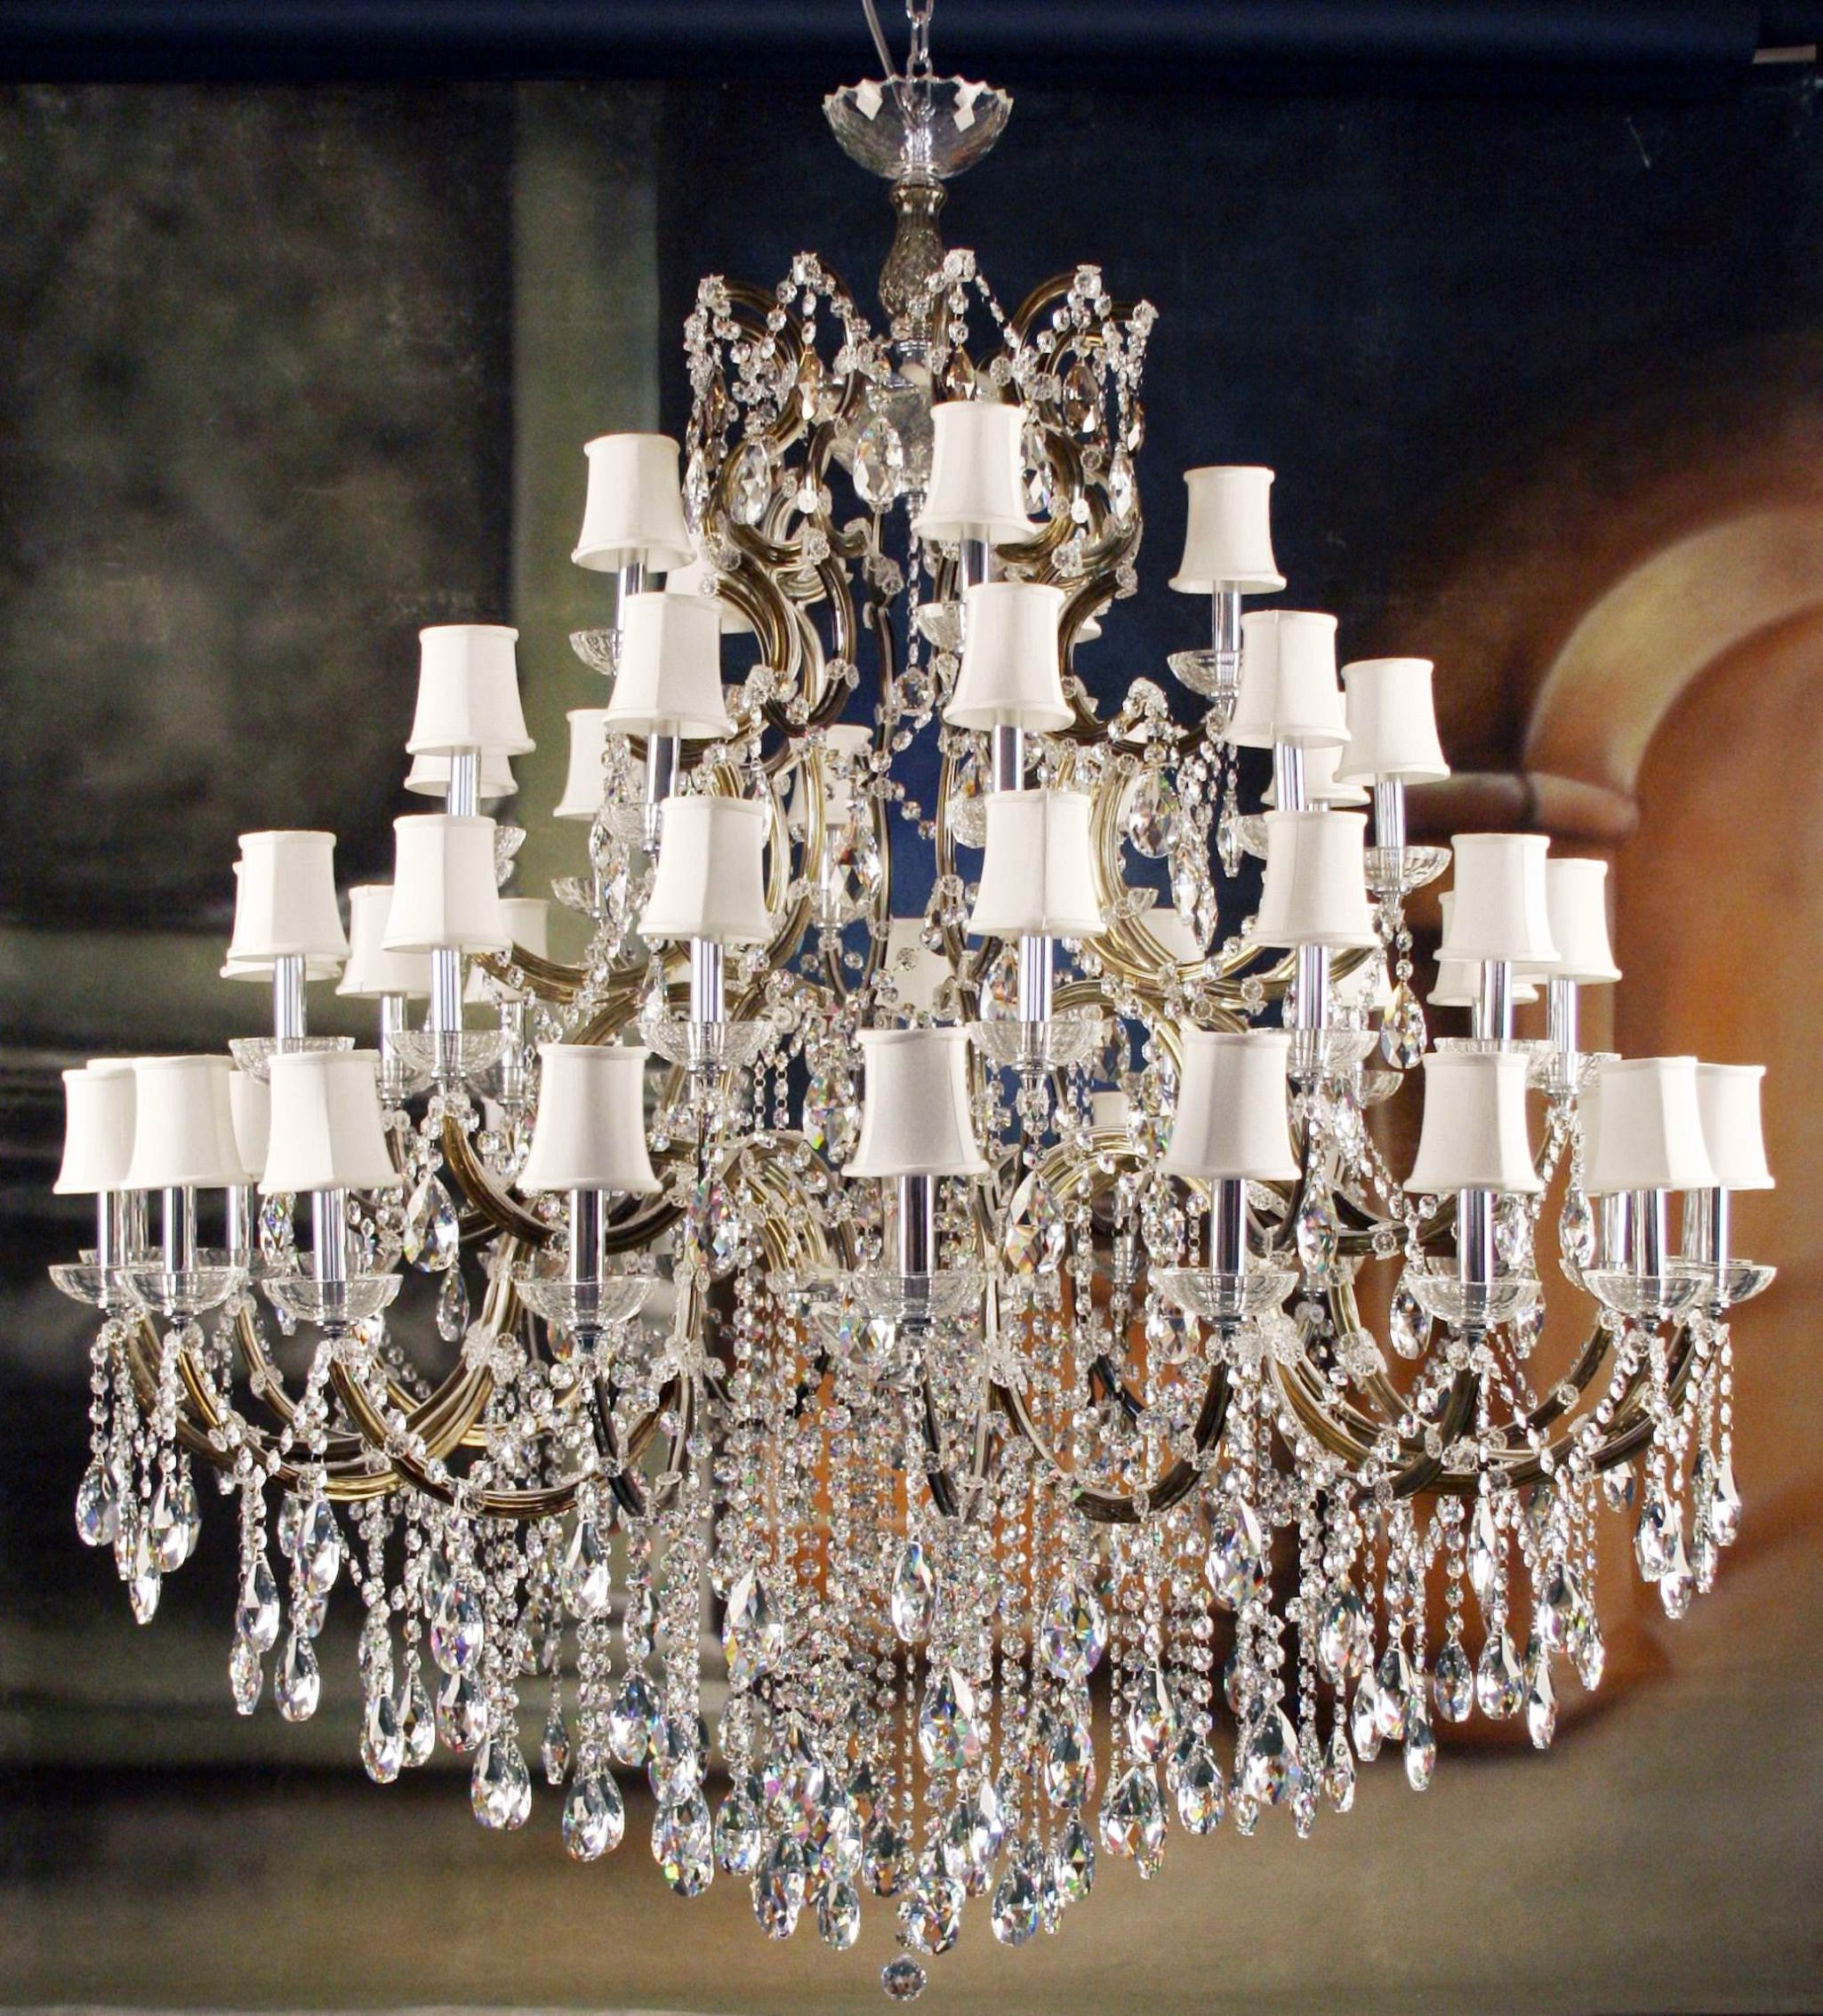 Living Room High Quality Crystal Chandeliers For Home Lighting Intended For Lampshades For Chandeliers (Image 11 of 25)